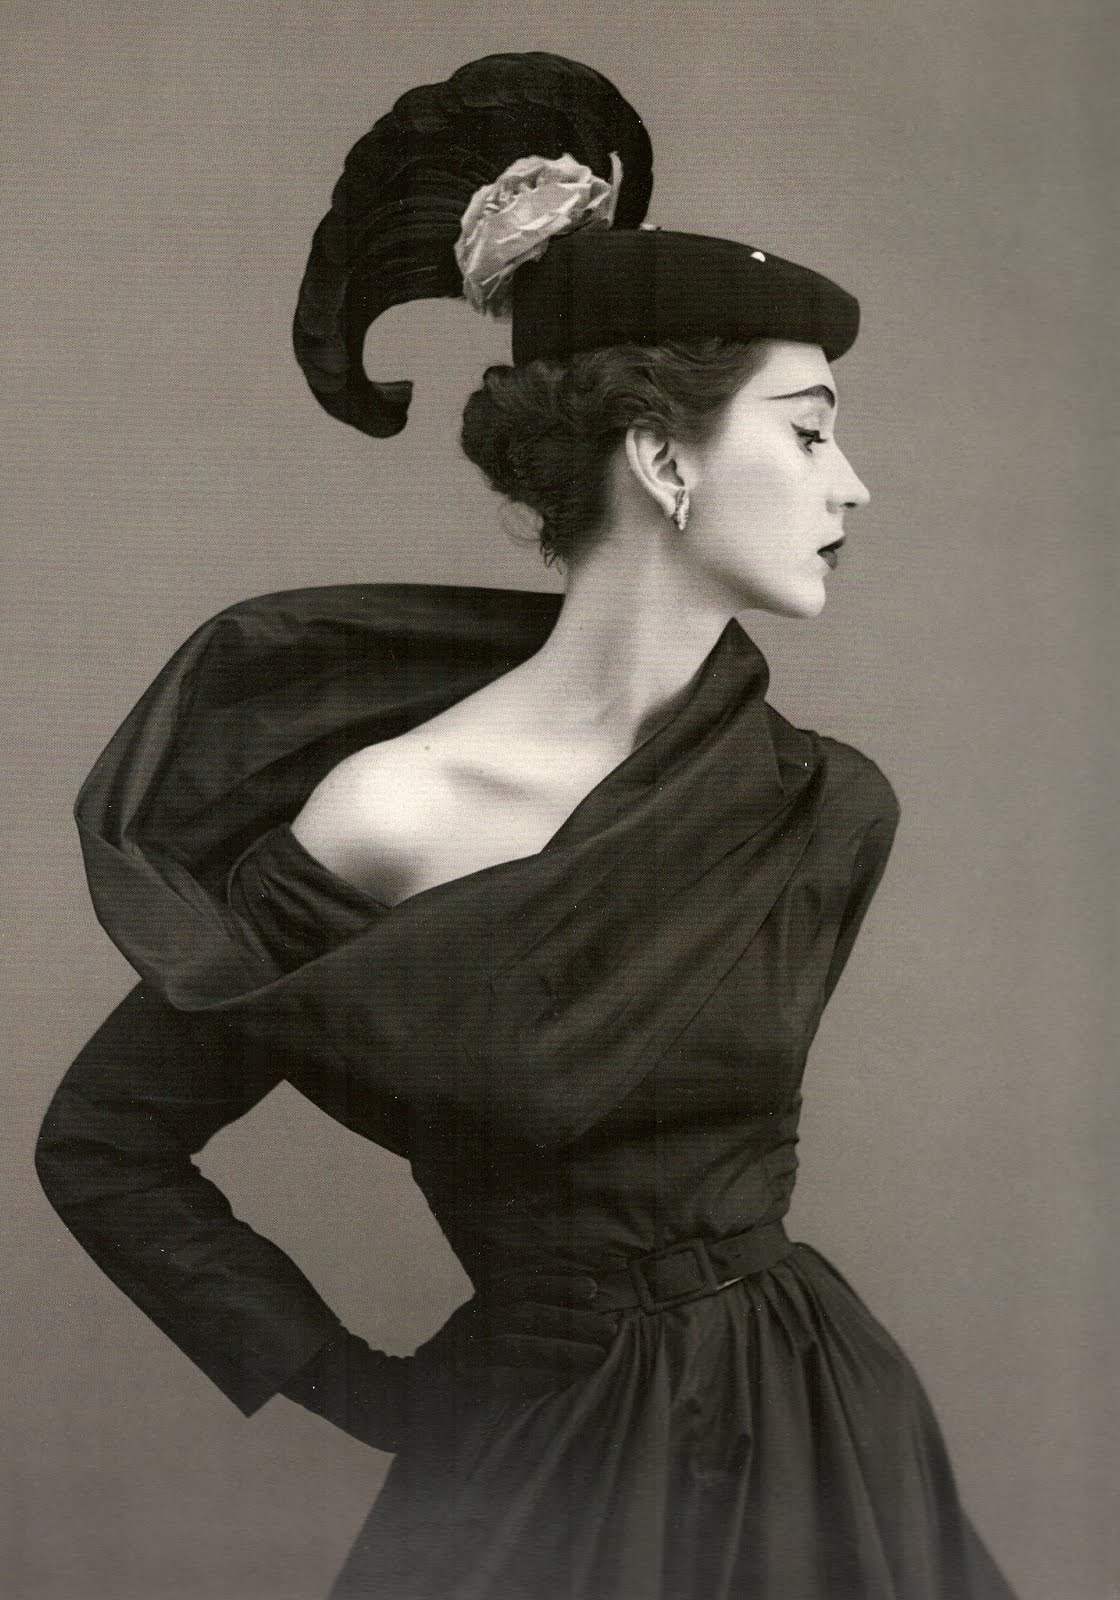 1950S Fashion - Hat